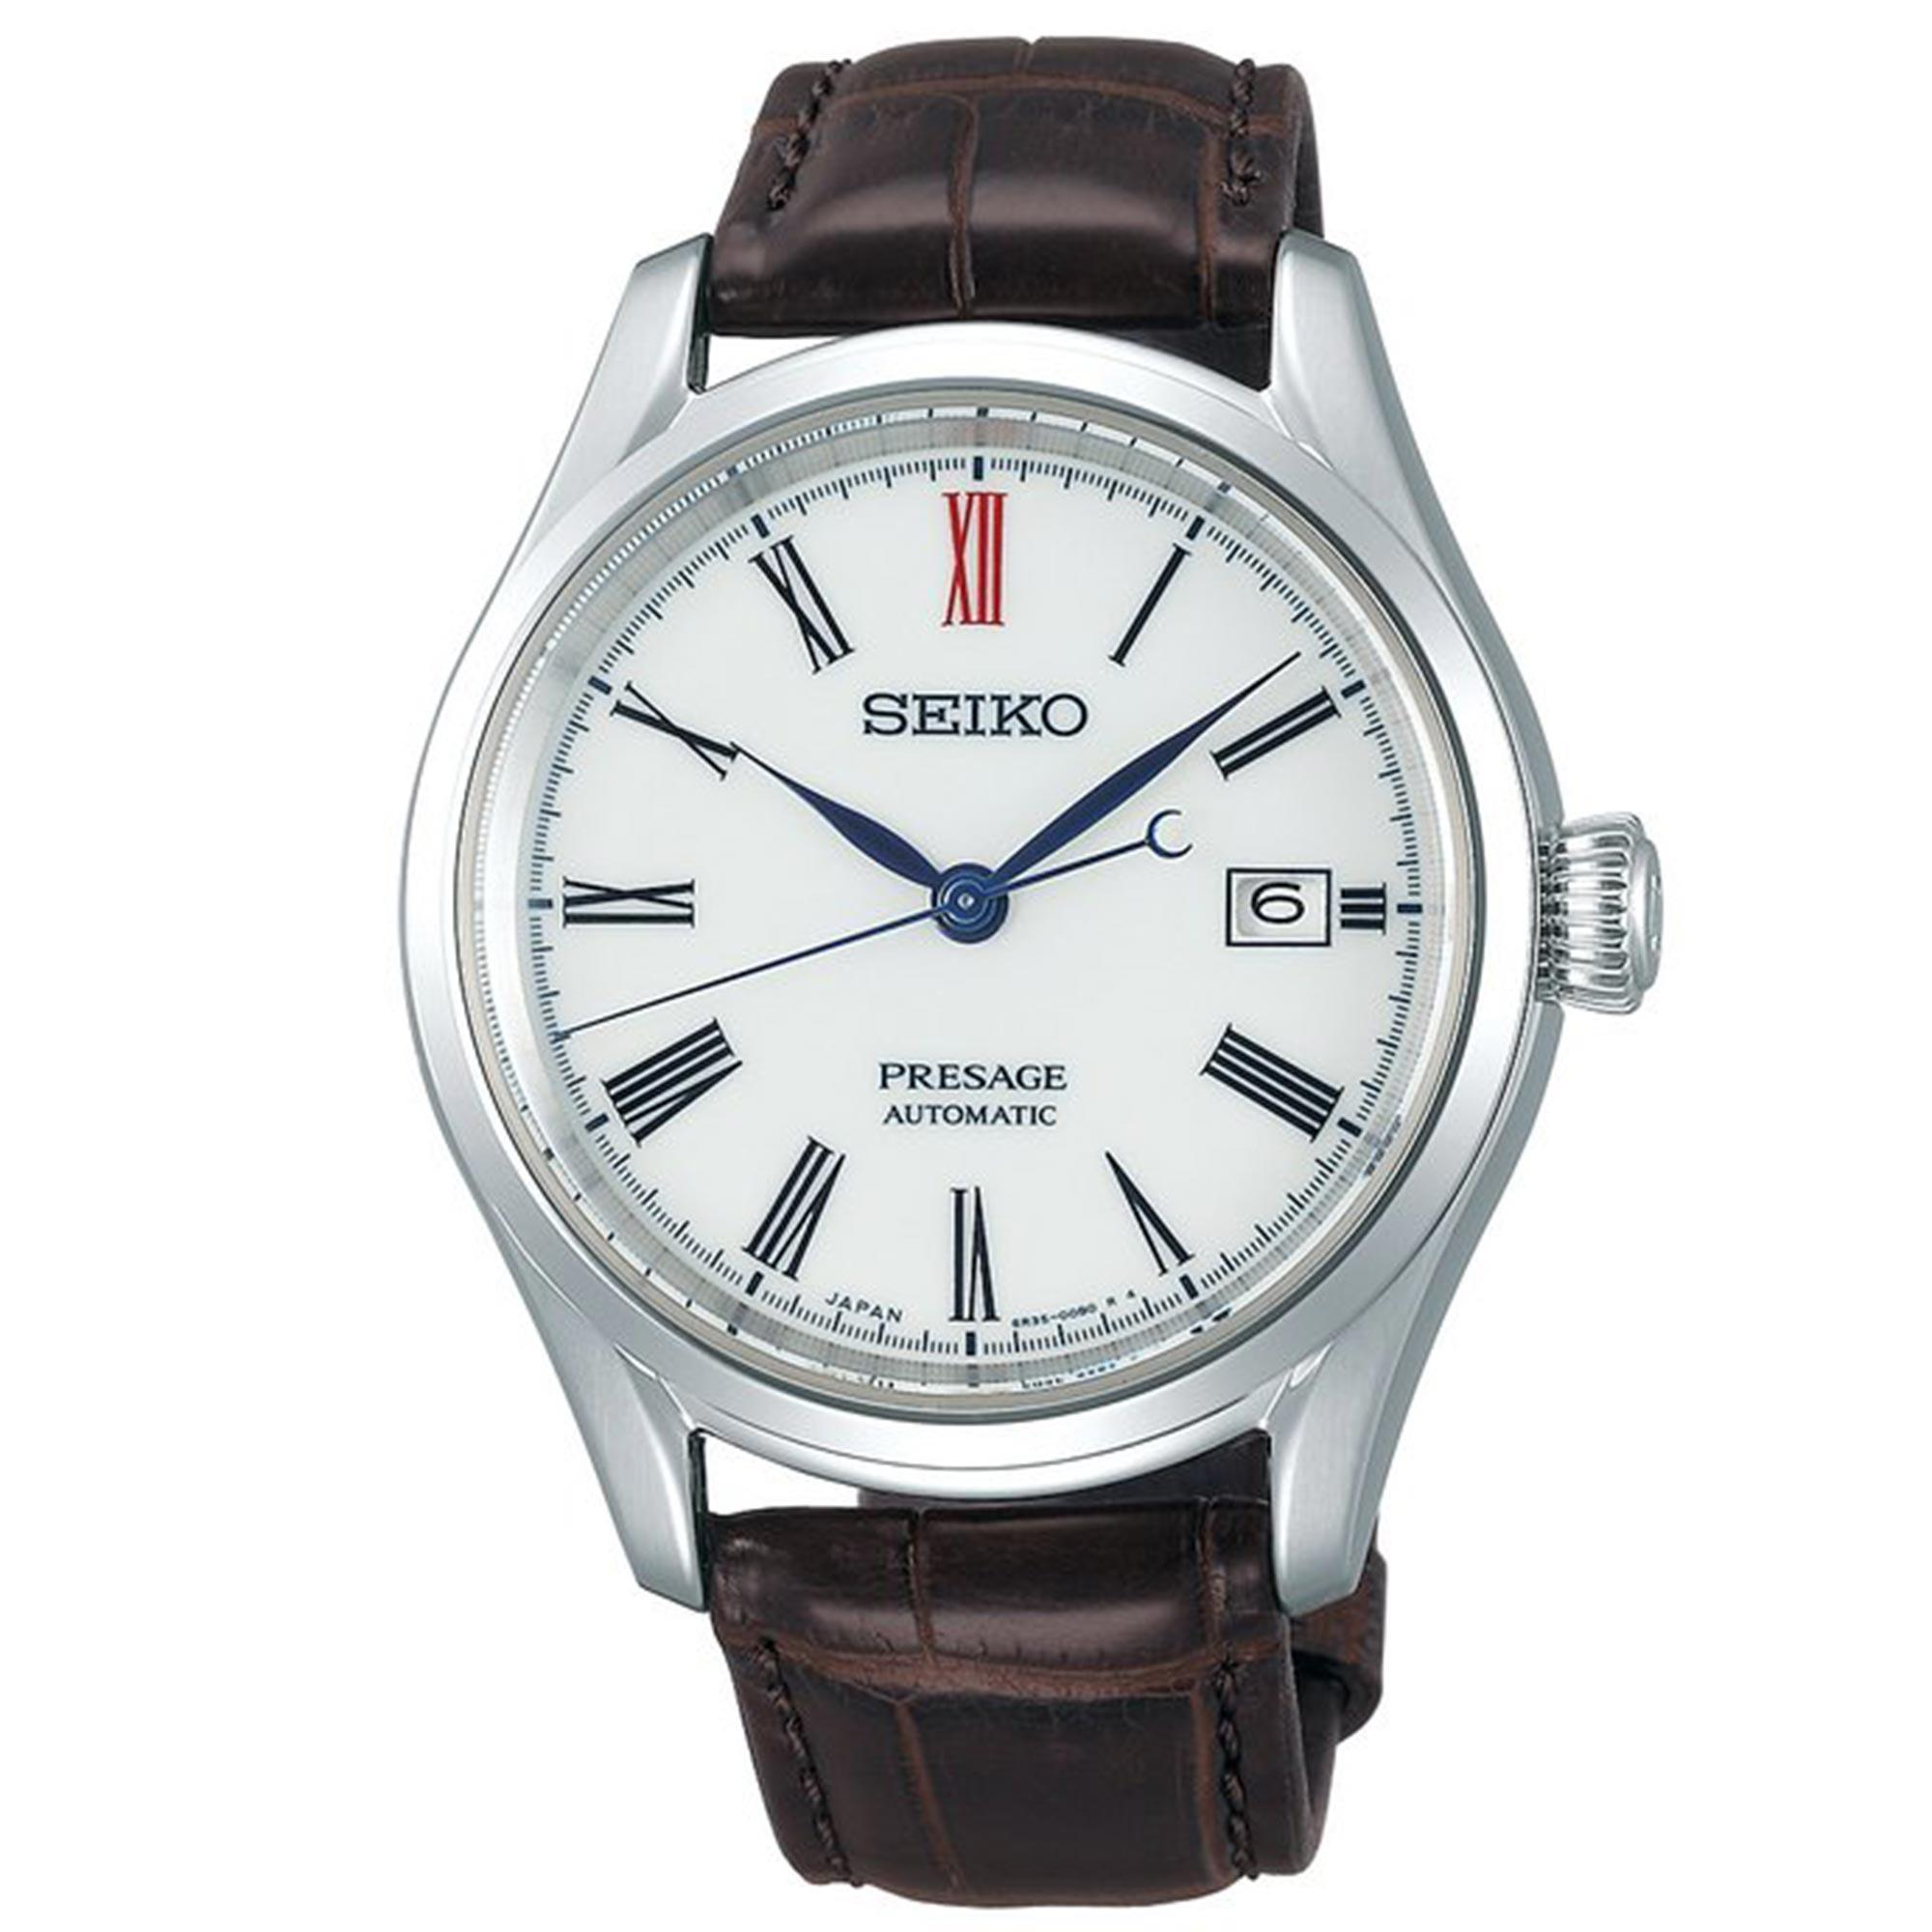 Seiko Presage Automatic Arita Porcelain White Dial Brown Leather Strap Men's Watch SPB095J1 RRP £1,550